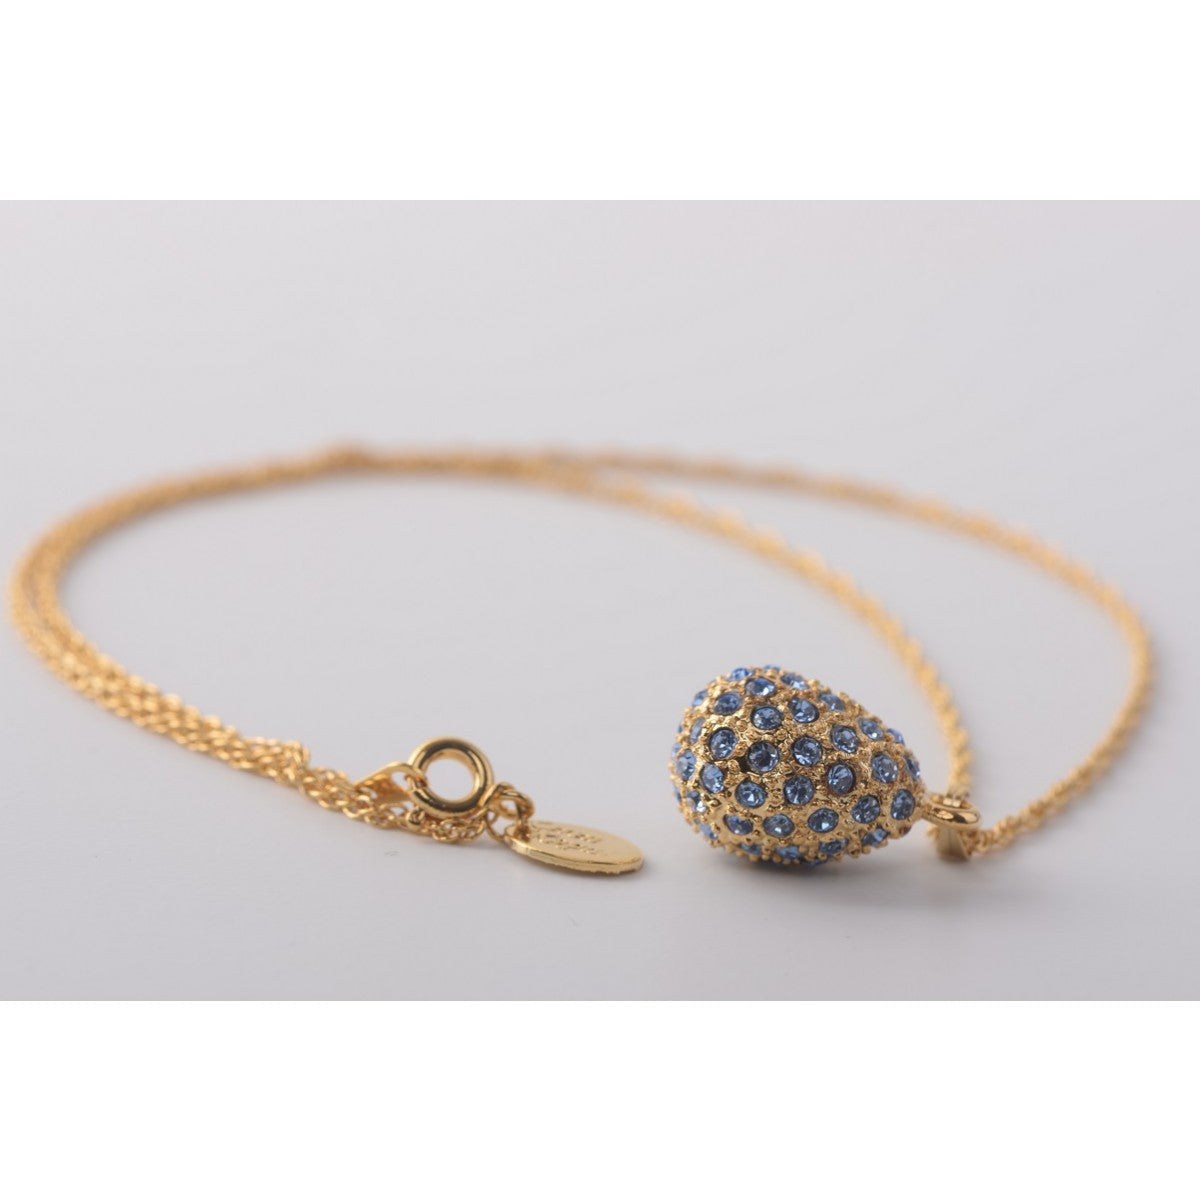 Gold with blue crystals  Faberge Egg Pendant Necklace